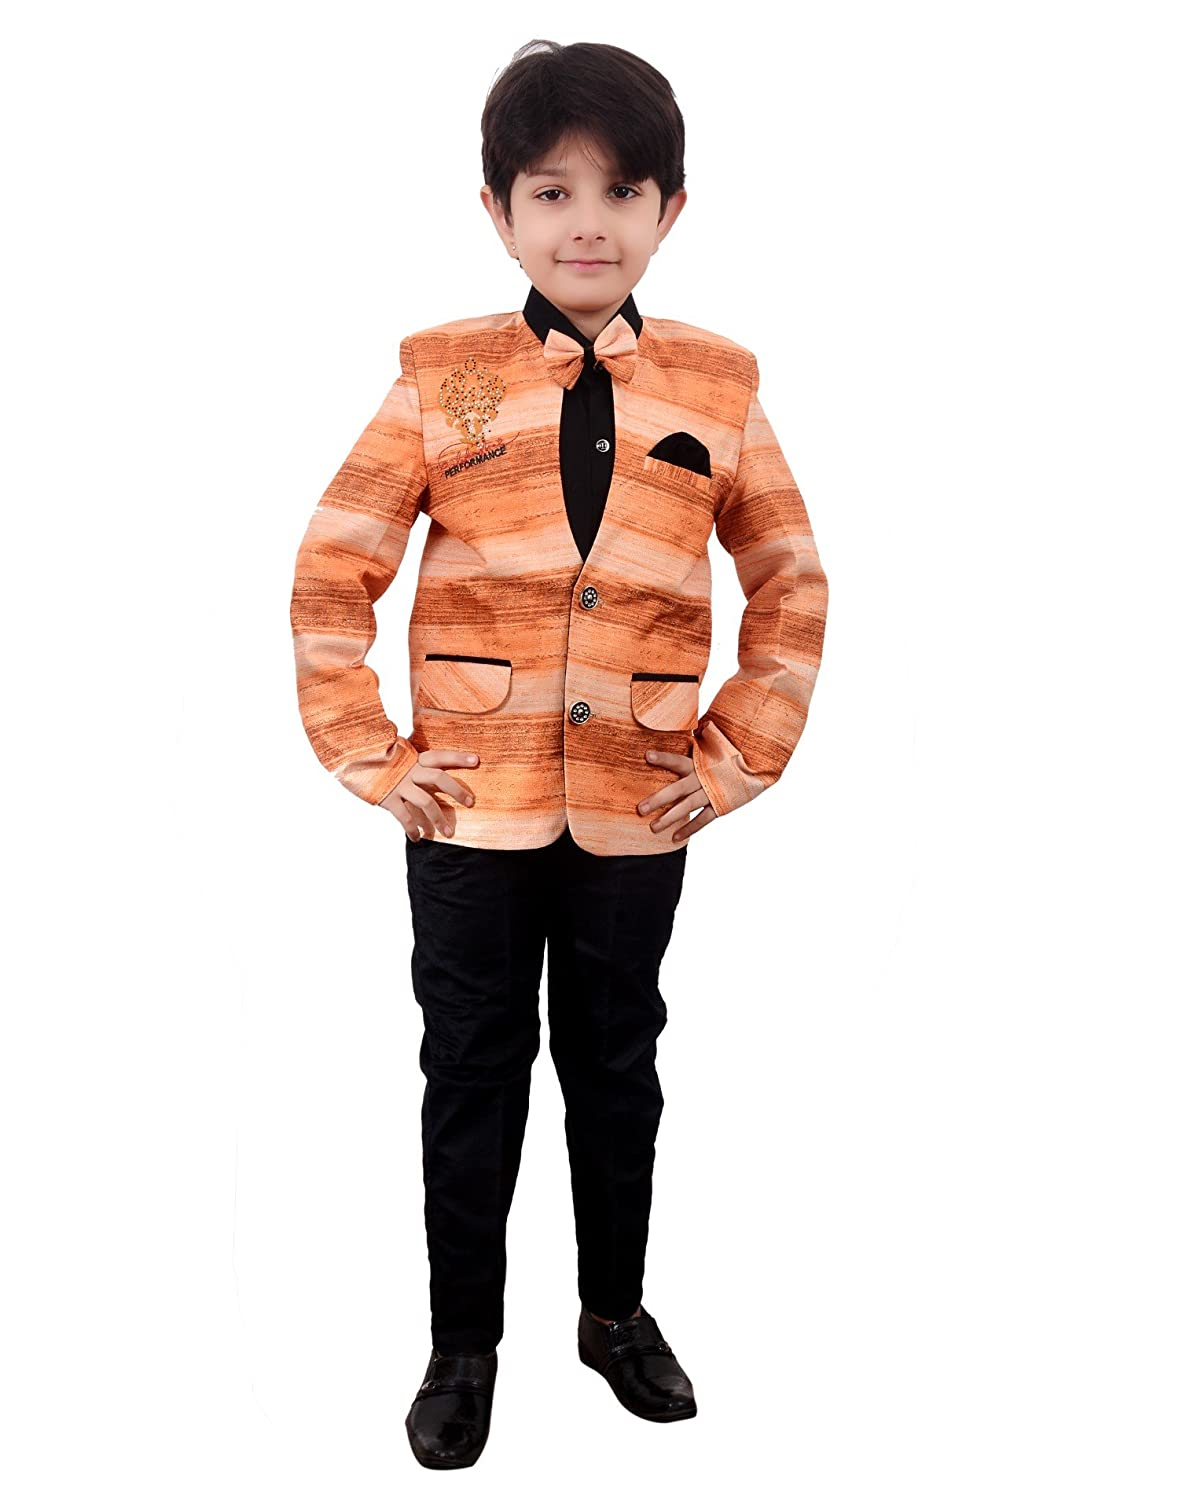 8707d92cf Arshia Fashions Boys Coat Suit with Shirt Pant and Bow - Party Wear ...